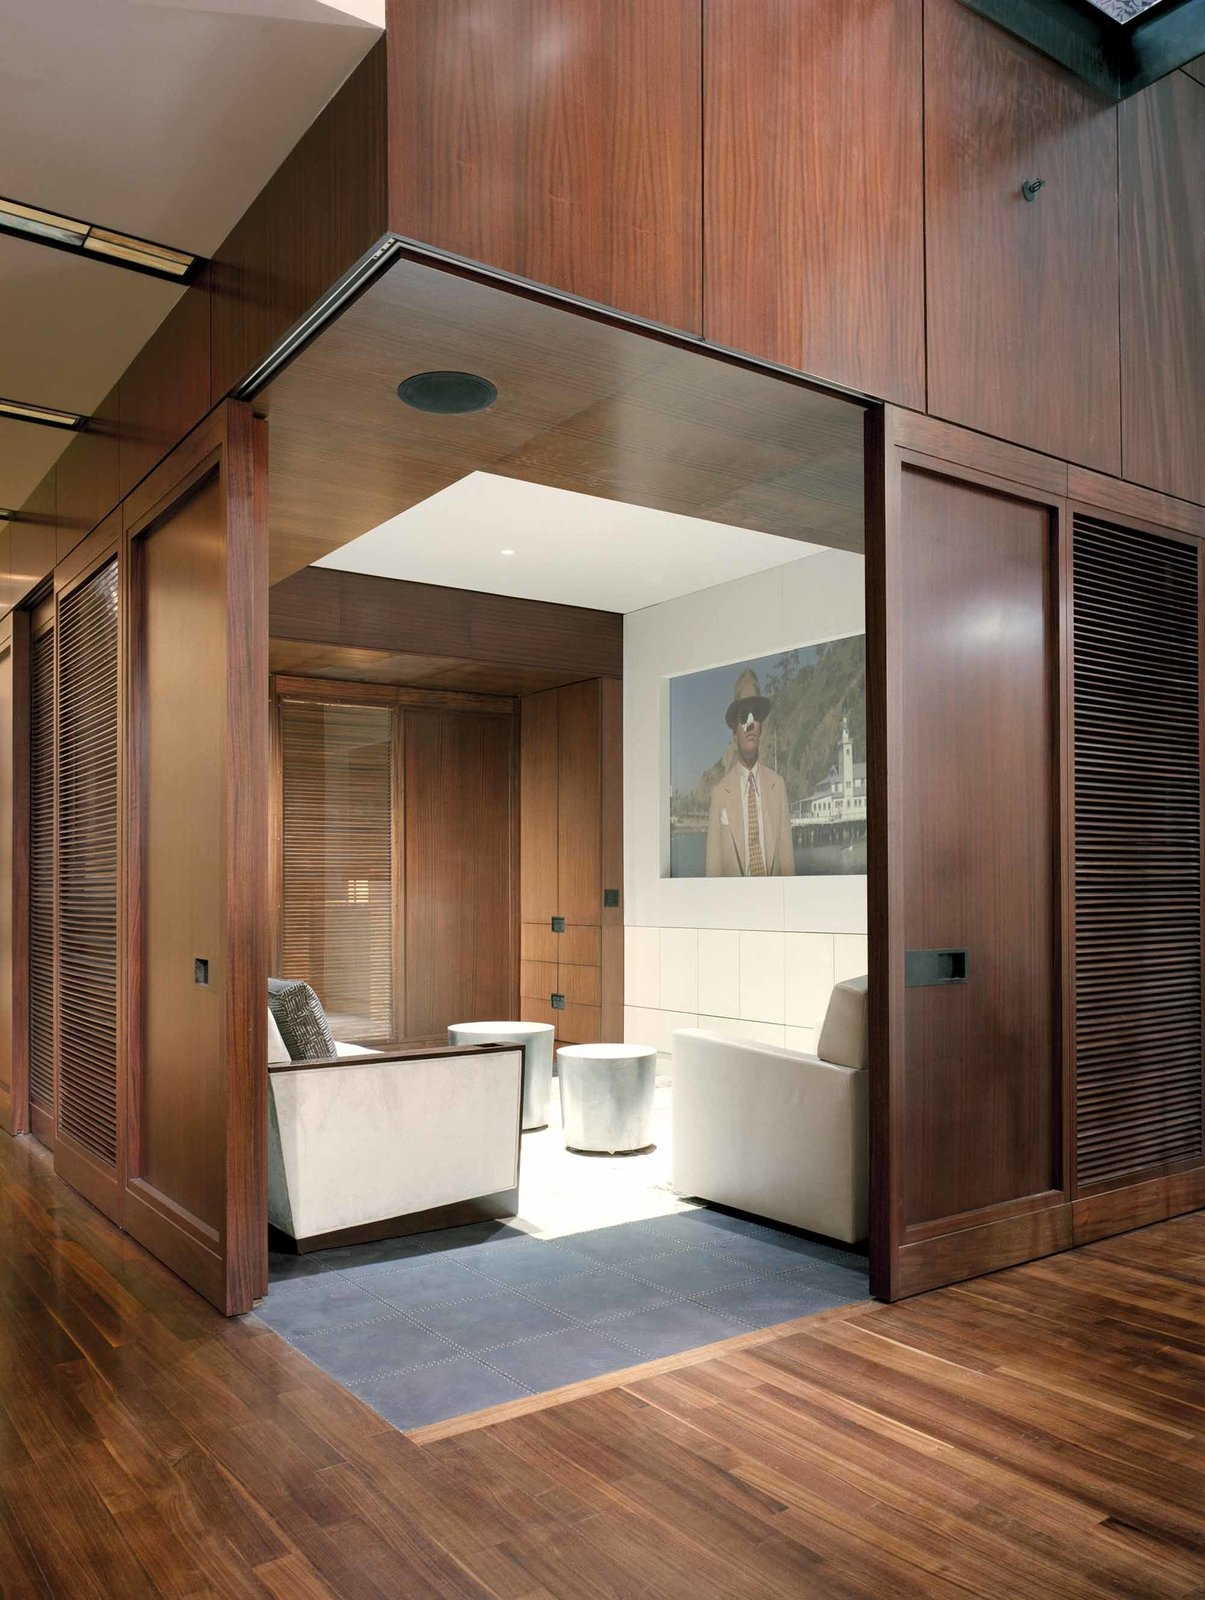 Doors, Sliding Door Type, and Wood Sliding doors partition a cozy screening room, where the resident can enjoy films and television in the comfort of custom designed furniture.  A Warm, Luxurious New York City Duplex with a Dramatic Catwalk by Luke Hopping